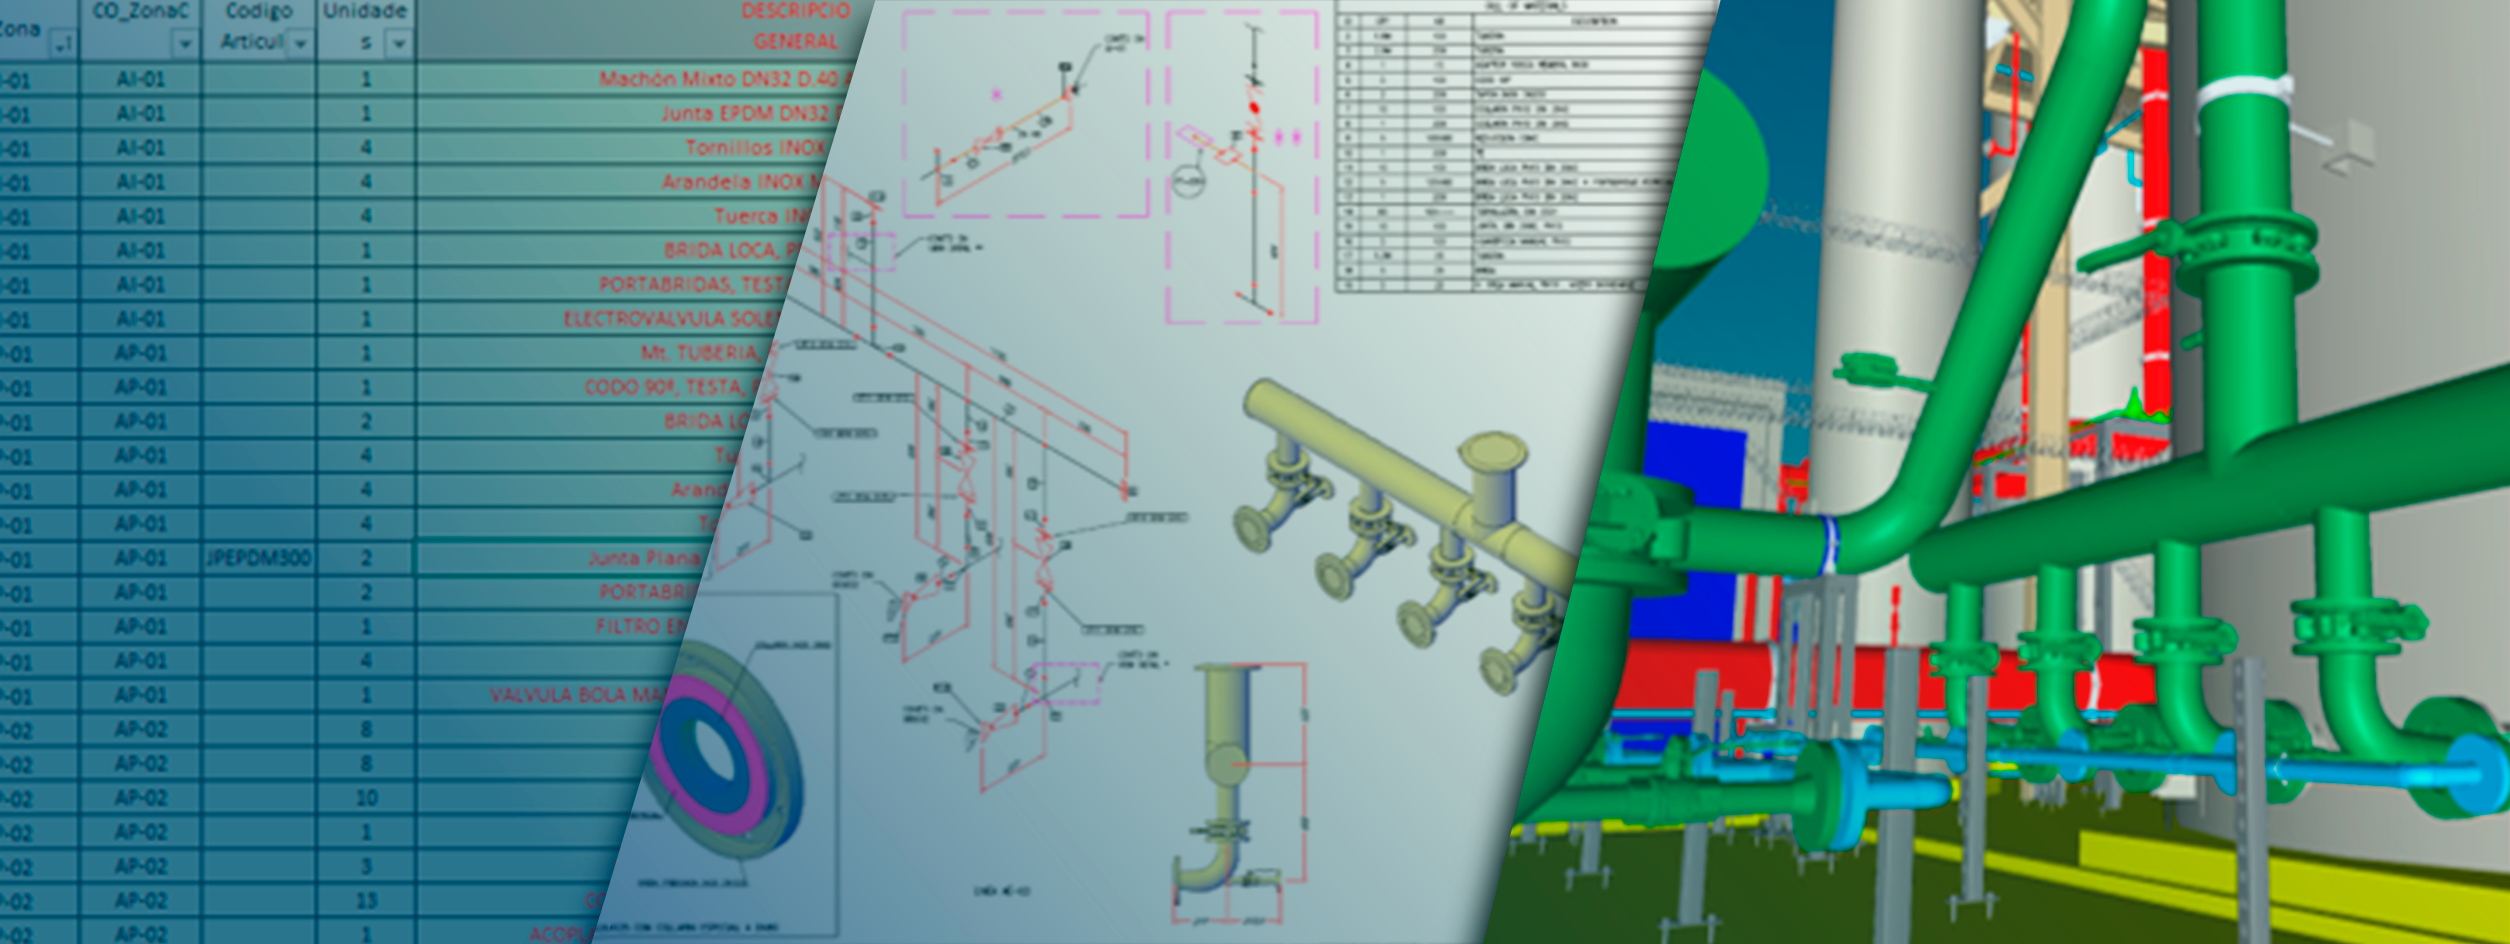 3d cad system